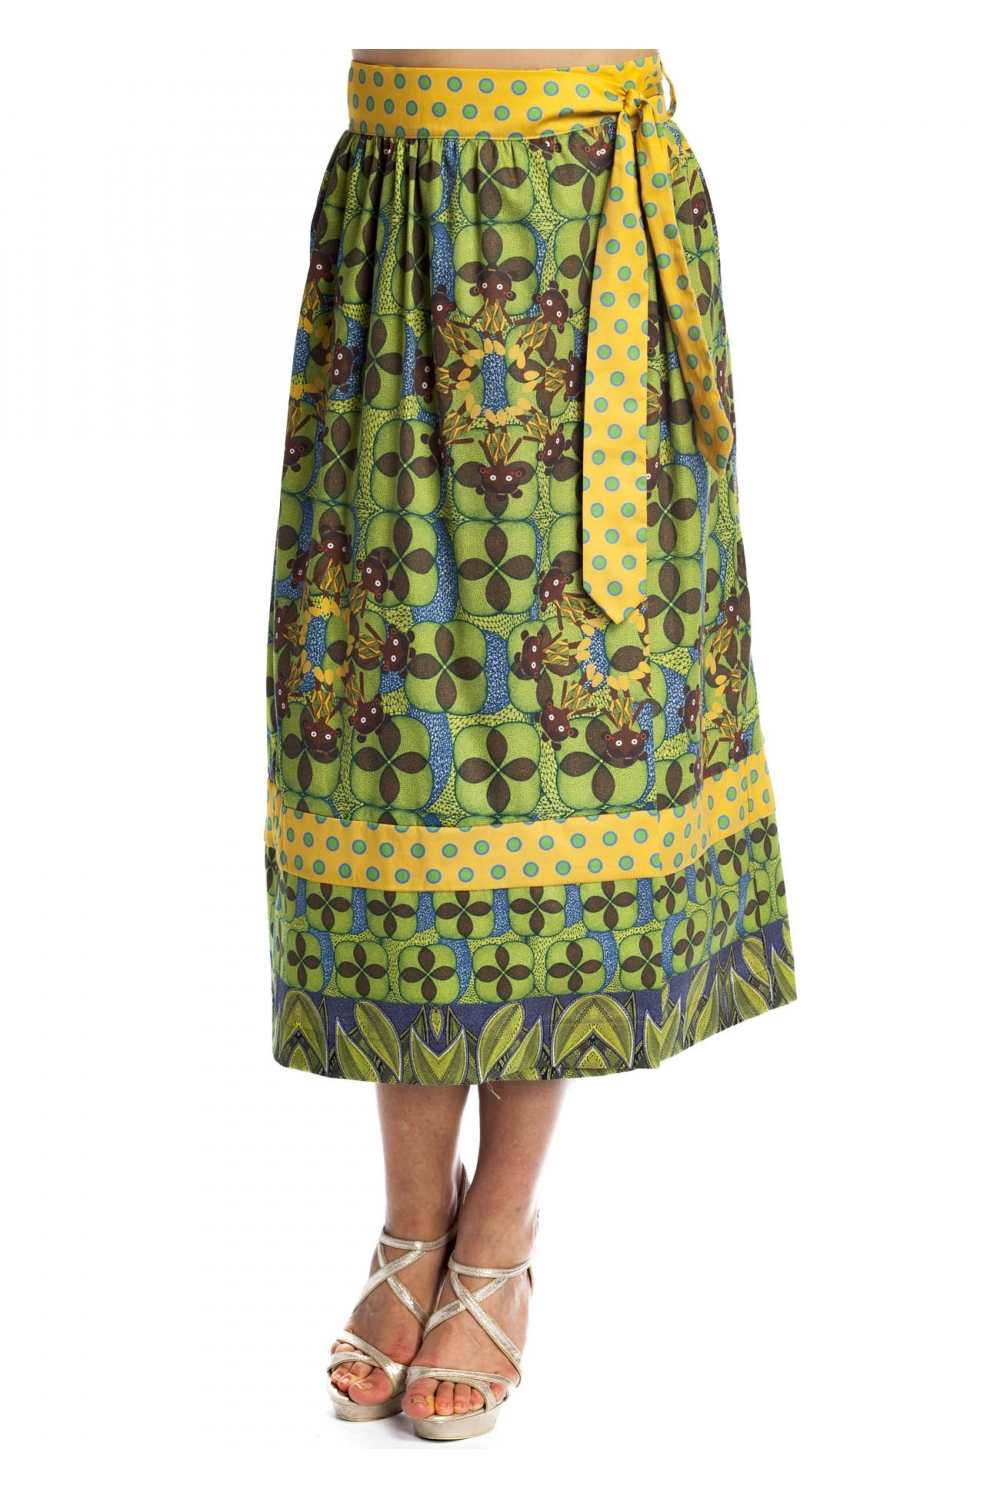 e8cbe1cde4 Large skirt with ankle-length. It has African patterns in green ...